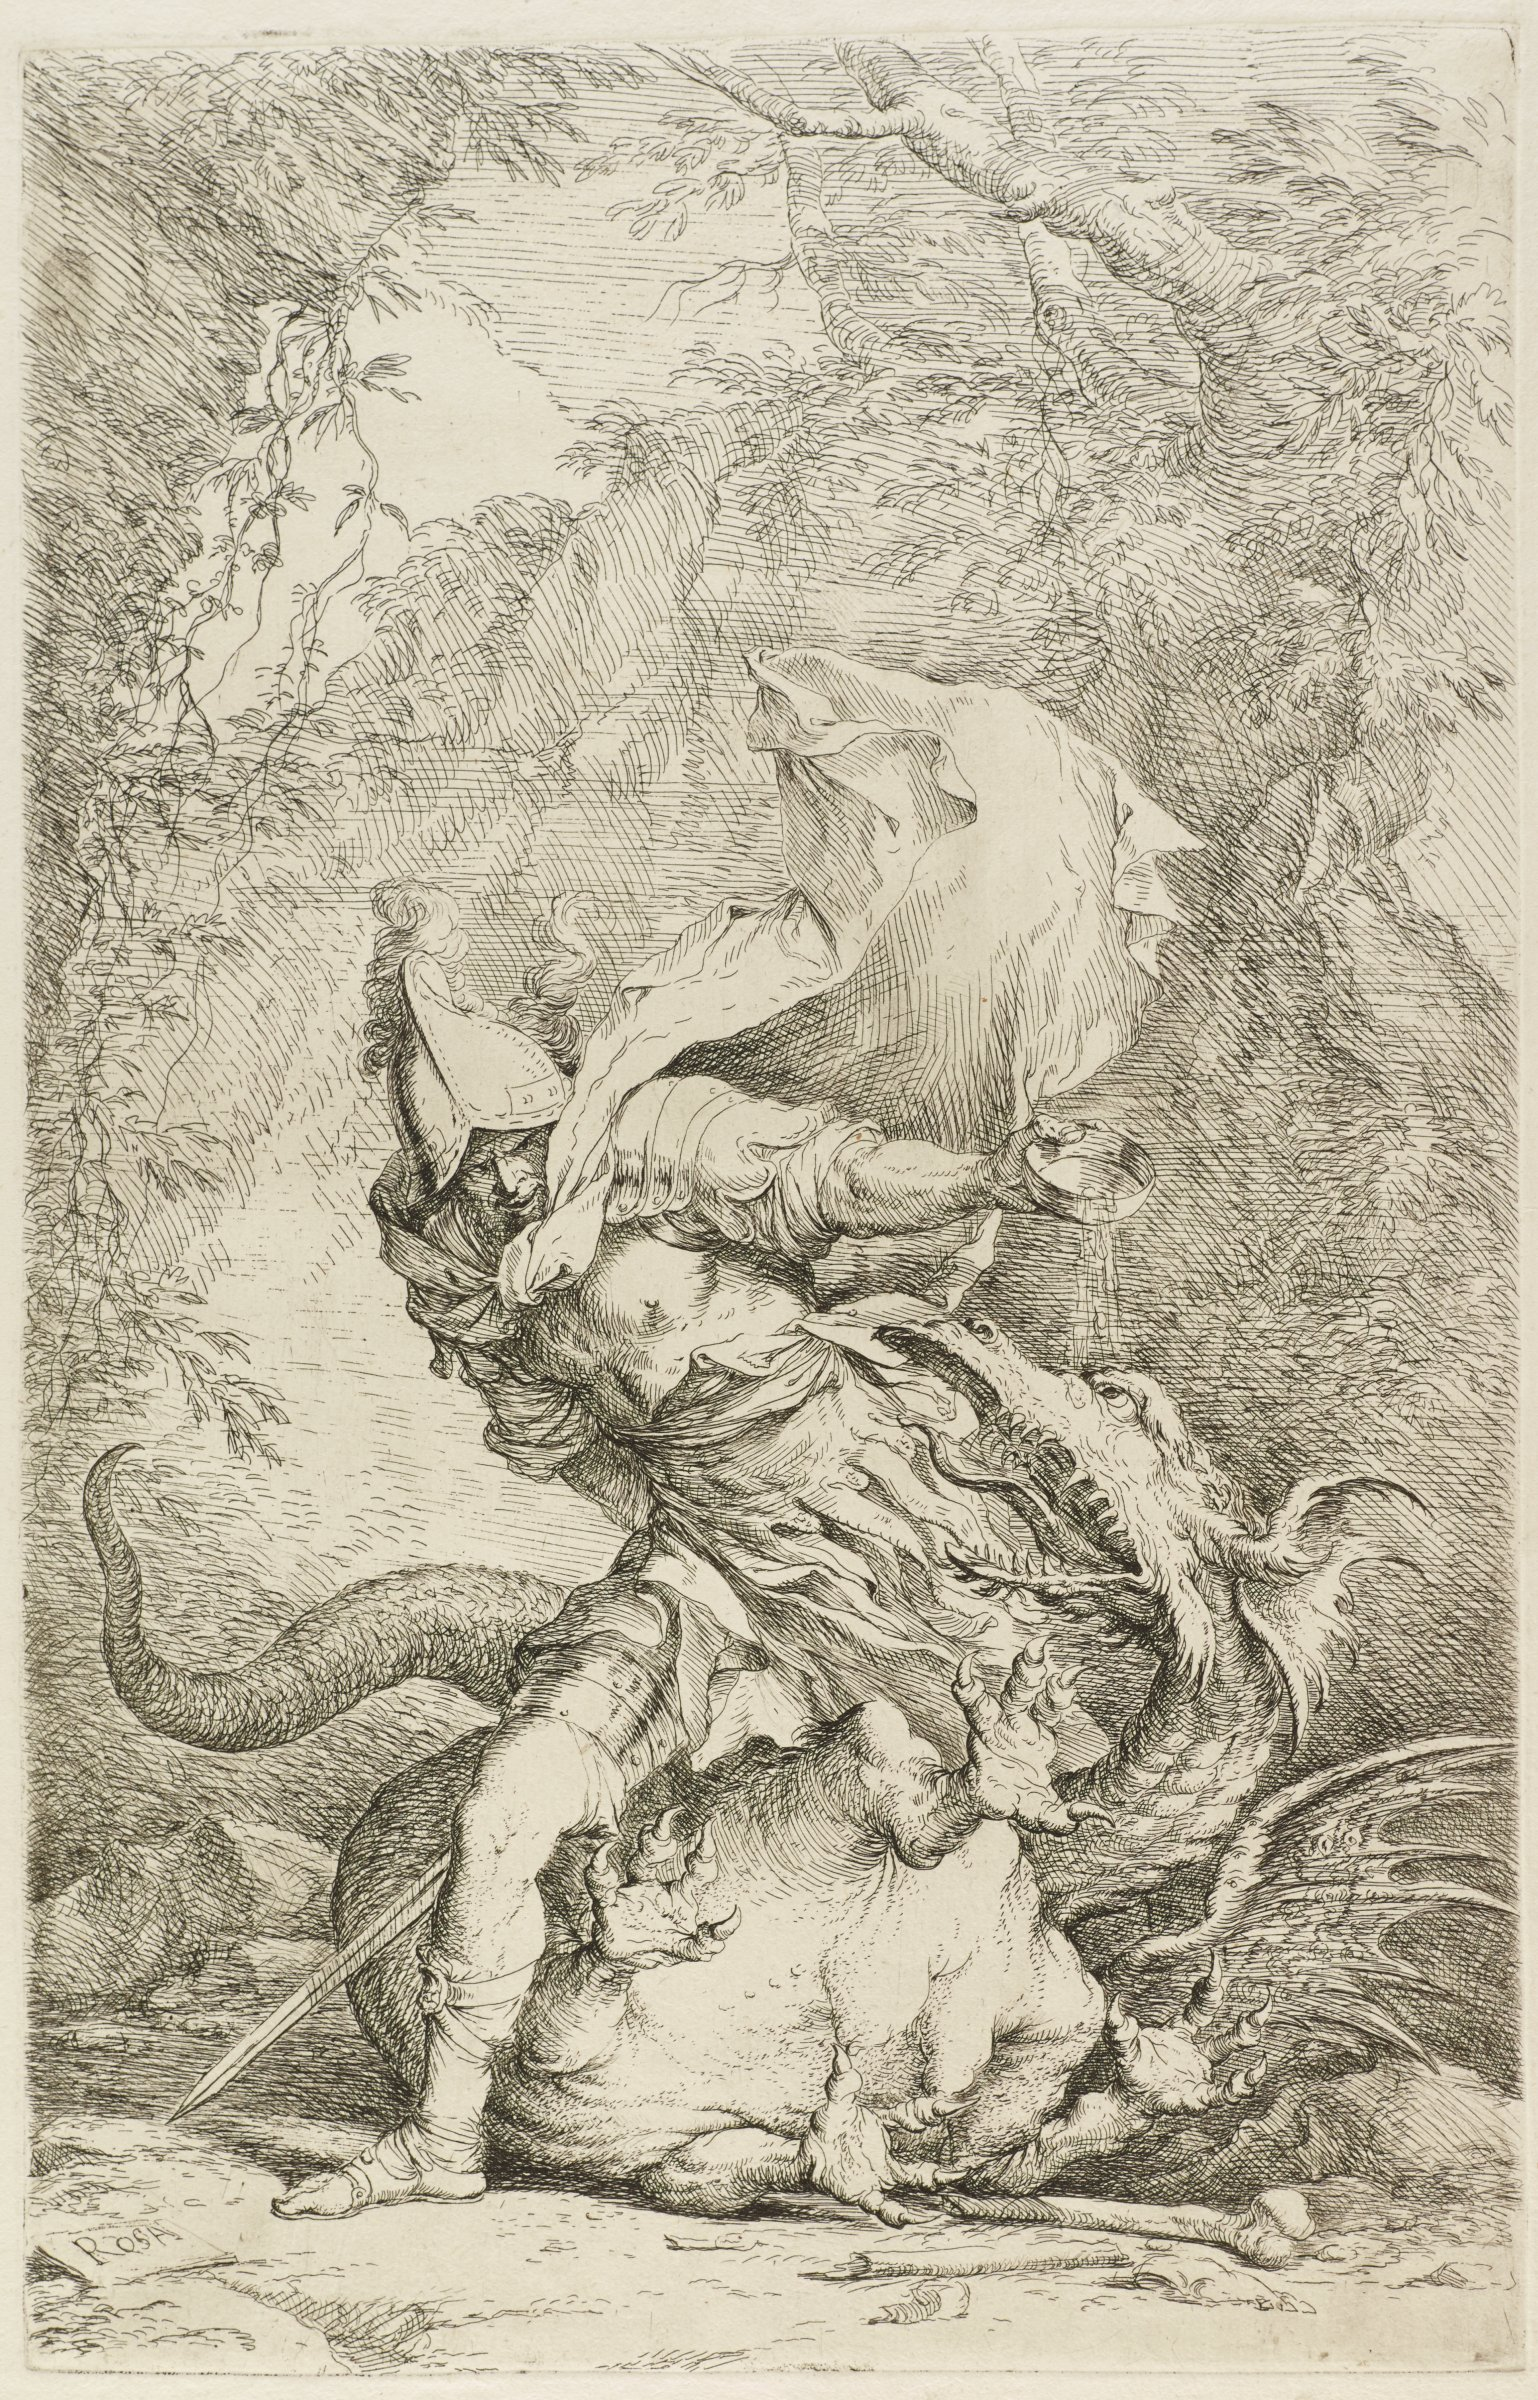 Jason the Argonaut stands over a dragon. His cape blows in the air as he pours a liquid onto the dragon's head. The dragon lays on his side, flailing and roaring.